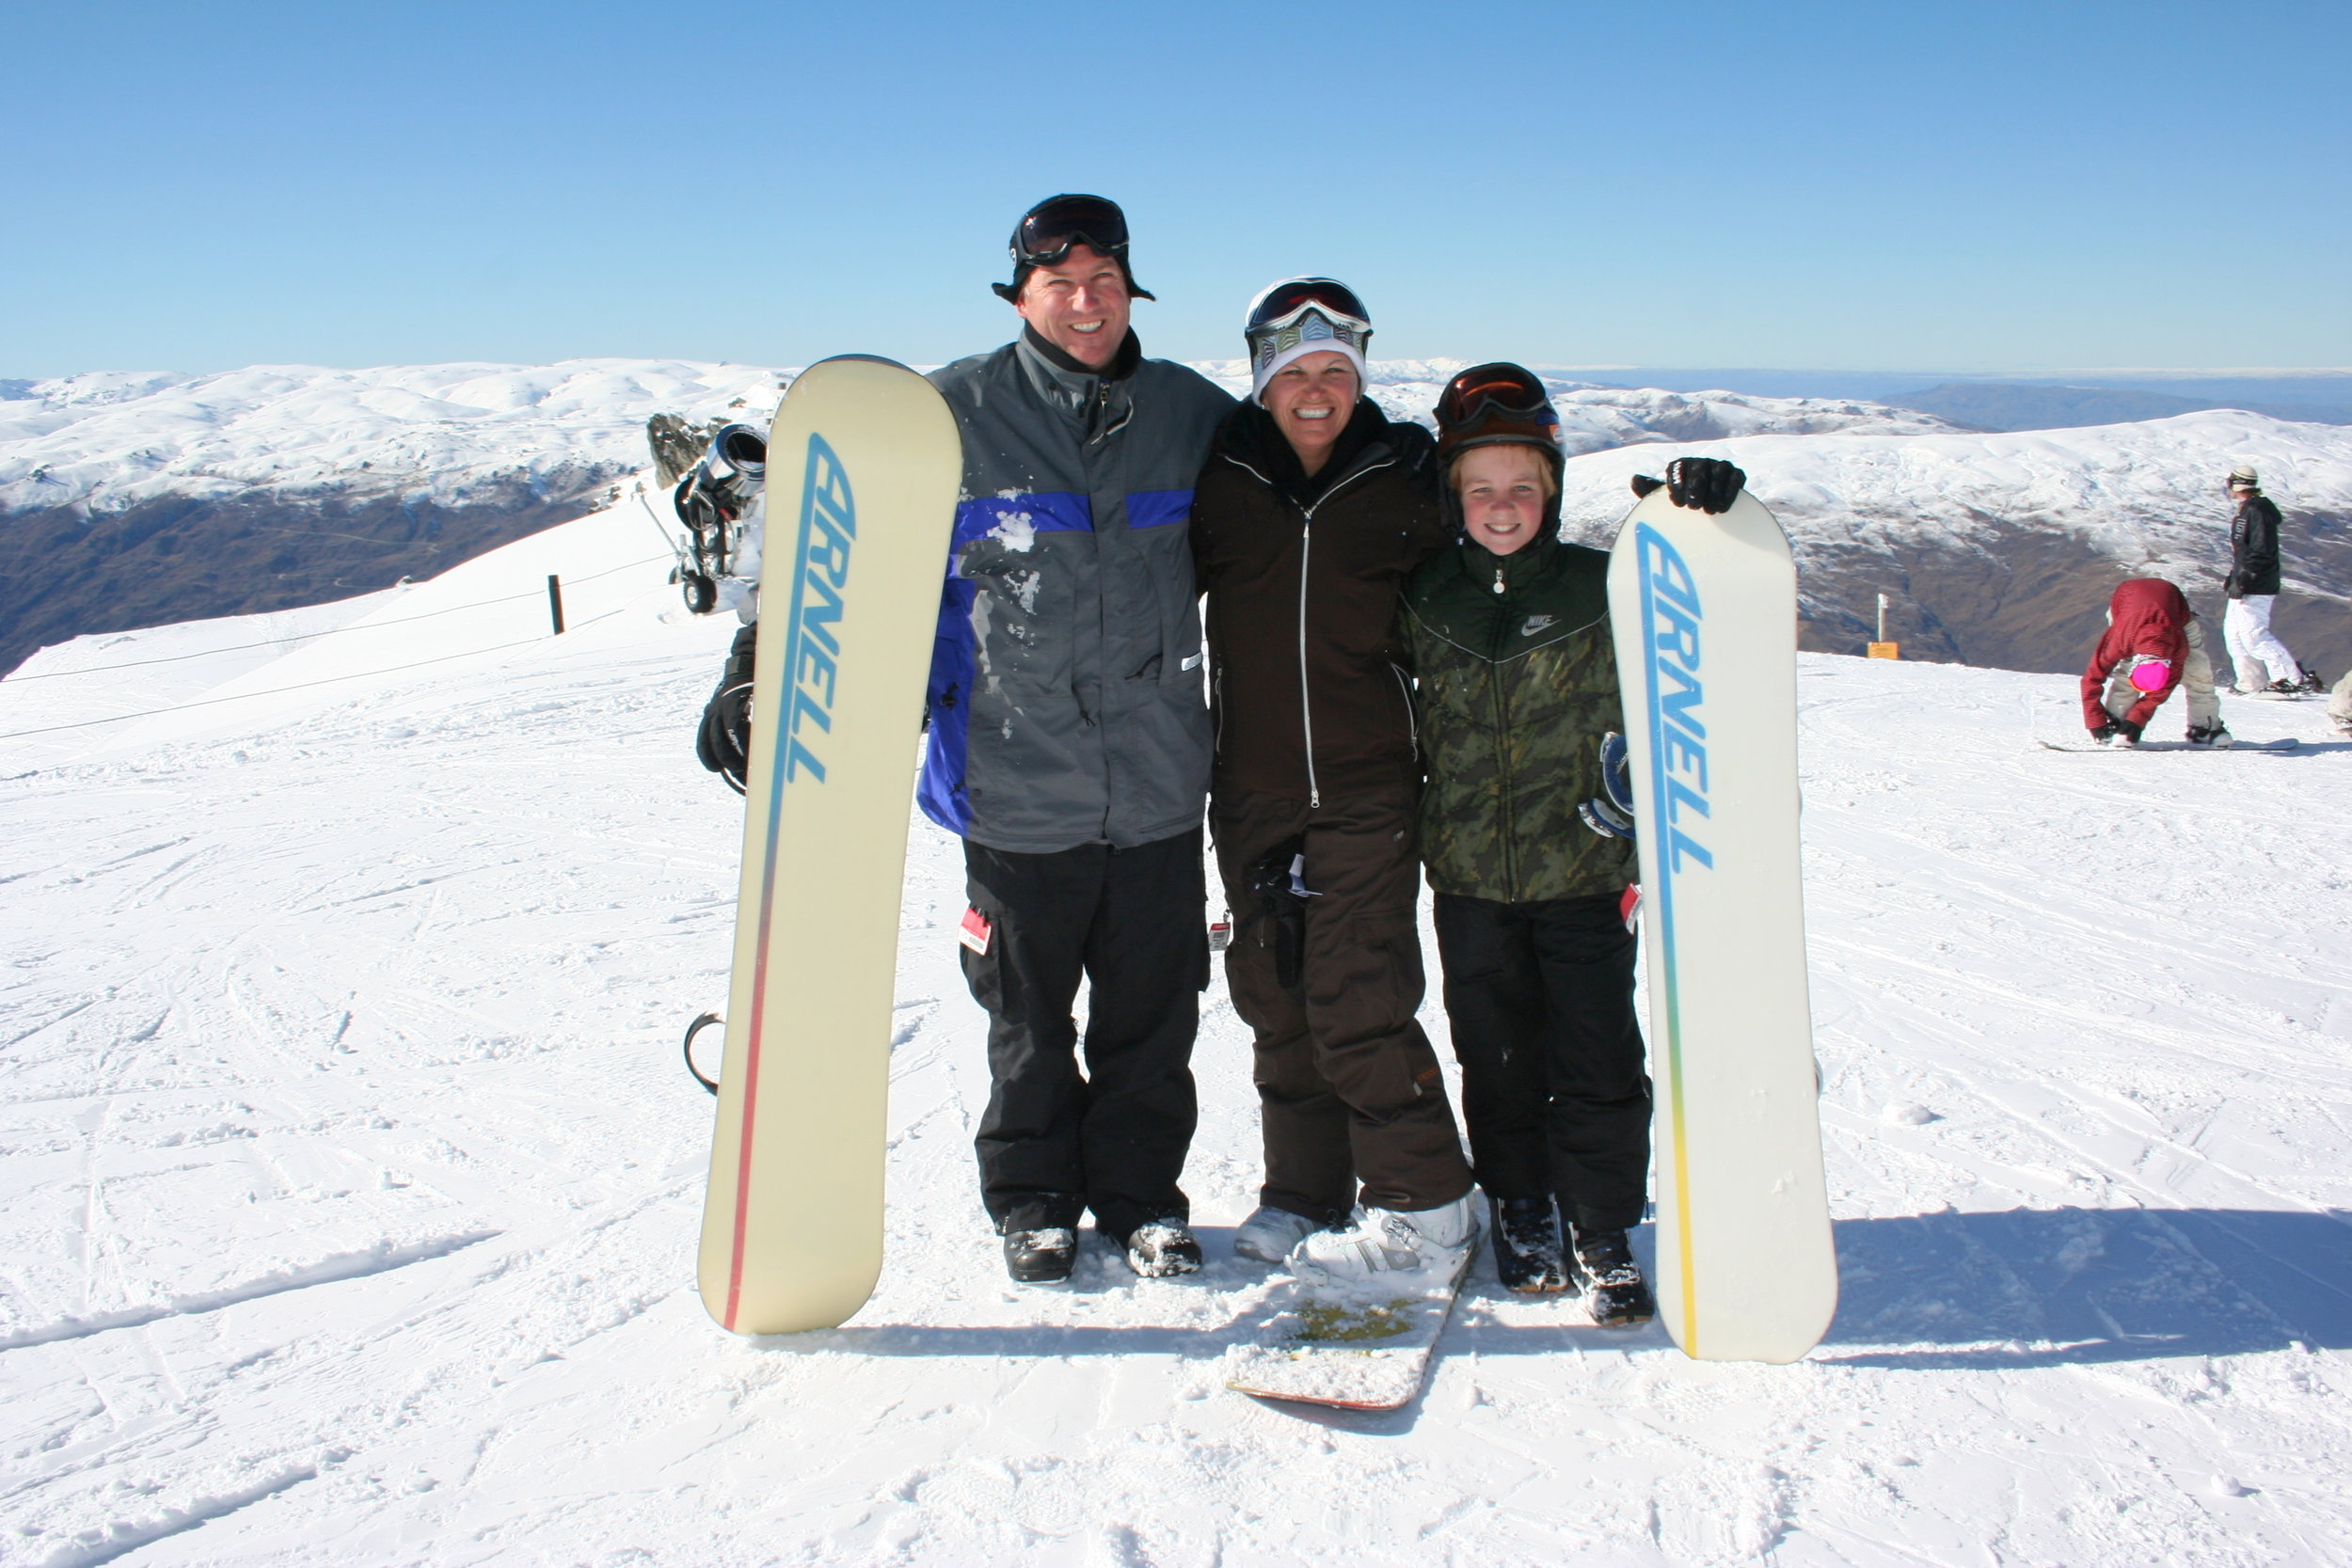 Charles and his family on a snowboard trip in new zealand.